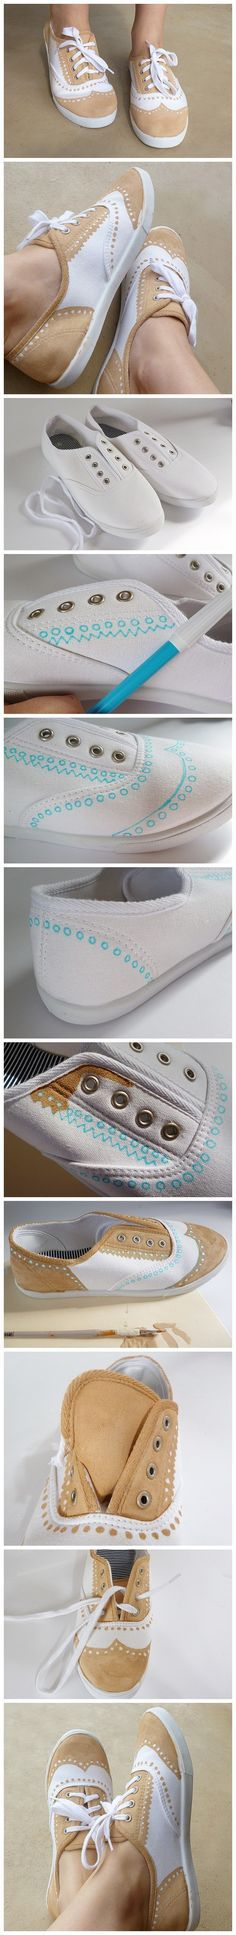 Oxfords DIY. http://sussle.org/t/Do_it_yourself